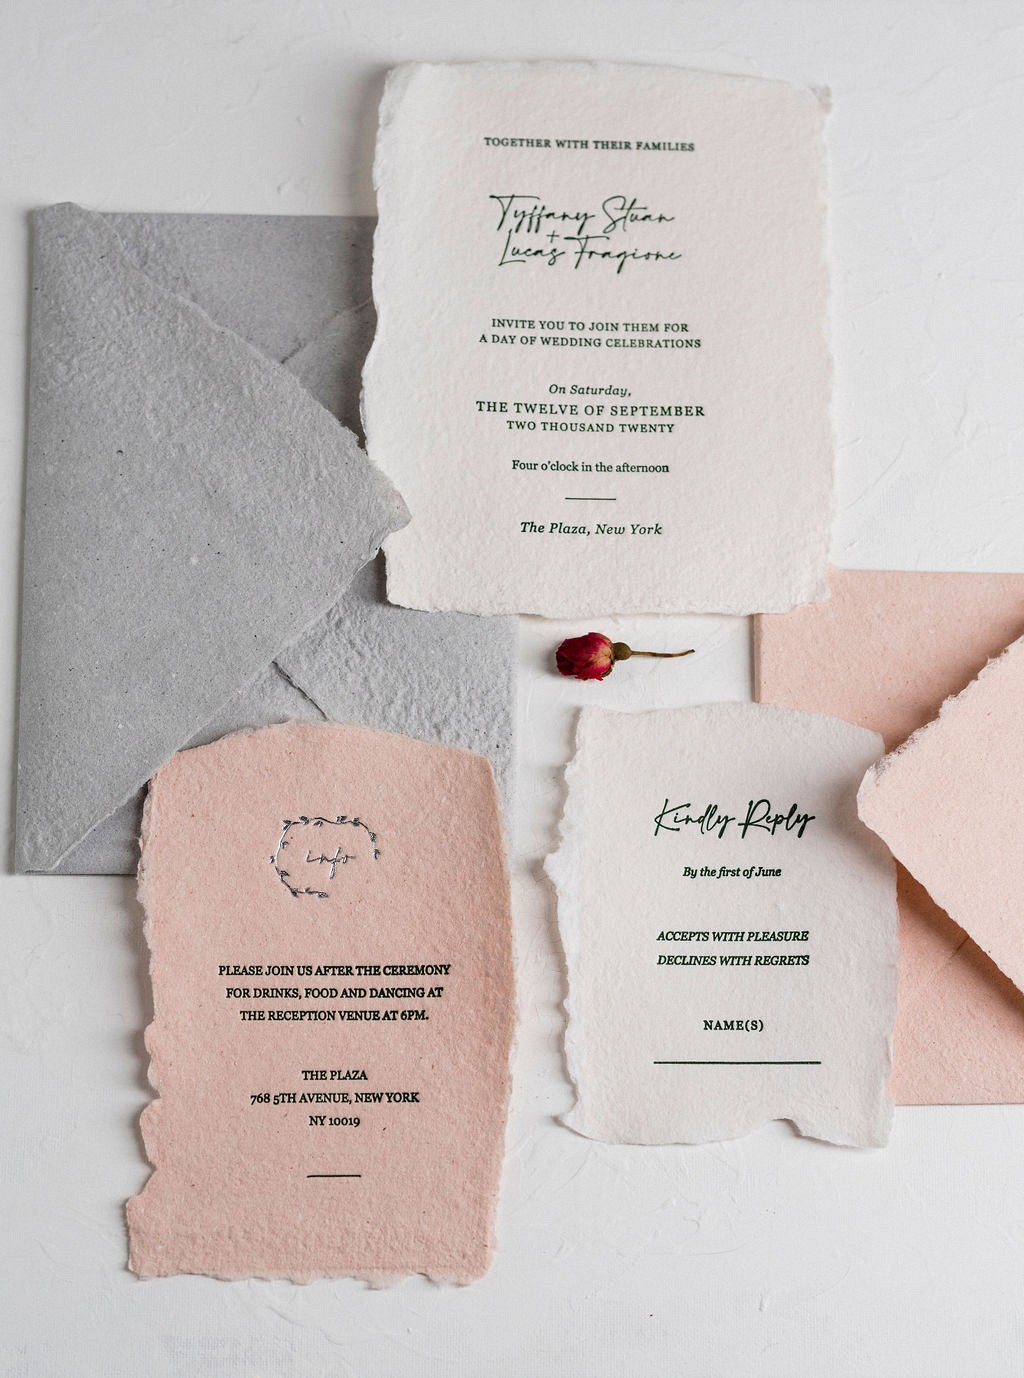 Handmade Paper - The New Wedding Stationery Trend for 2021